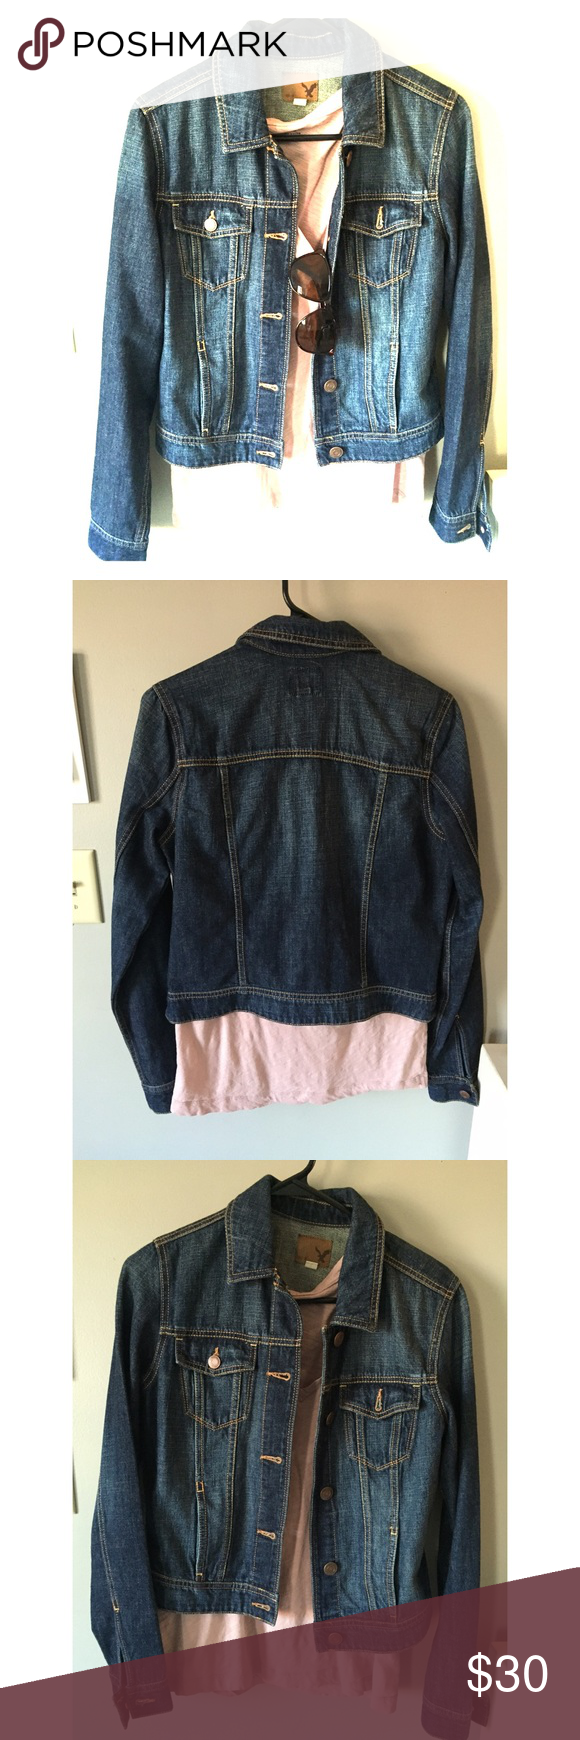 AE Denim Jacket American Eagle Denim Jacket - worn once, perfect condition! American Eagle Outfitters Jackets & Coats Jean Jackets